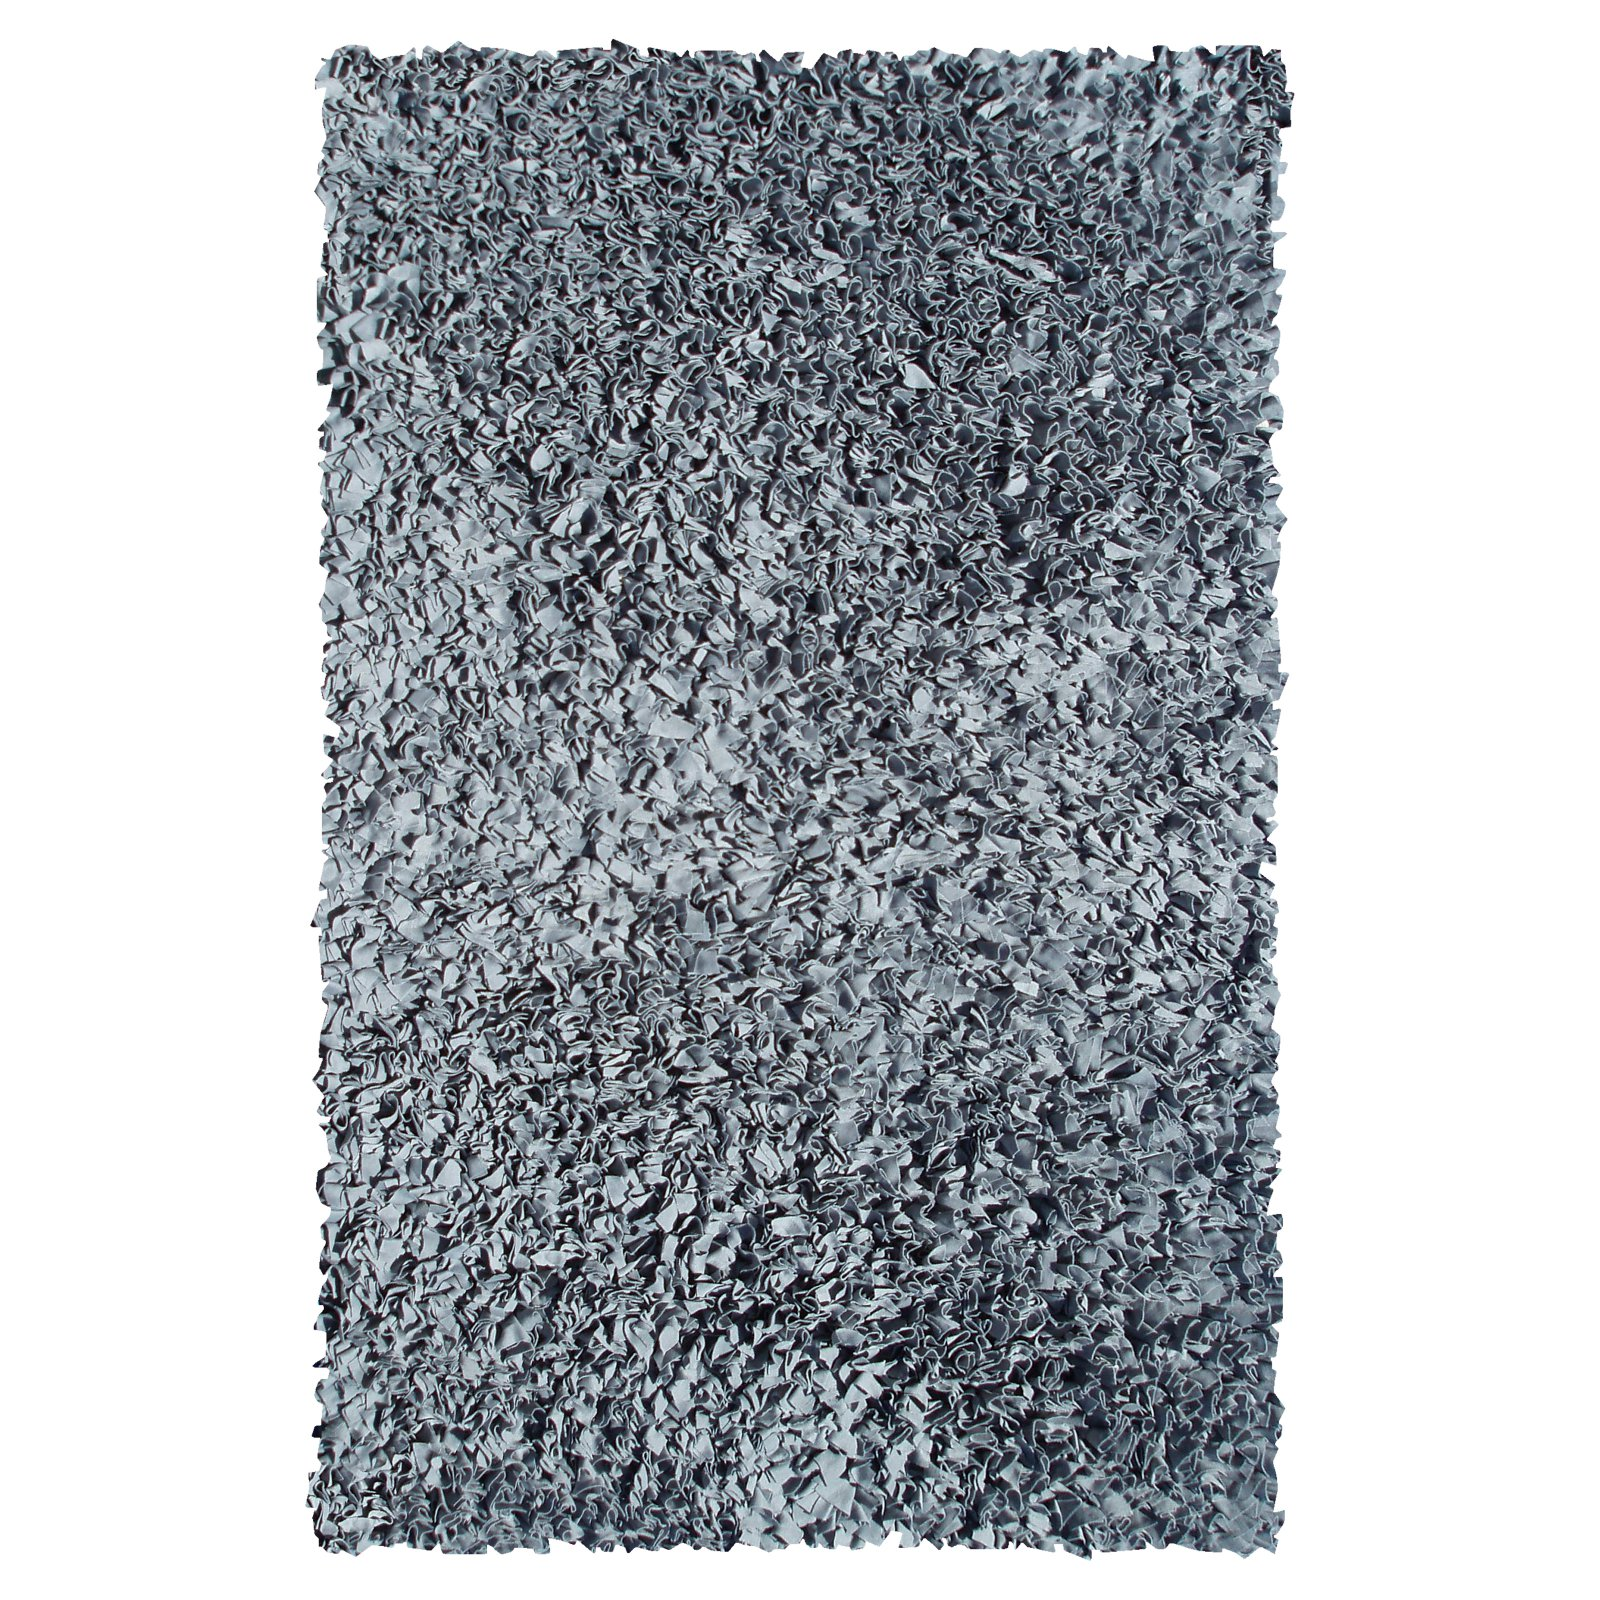 The Rug Market Shaggy Raggy Grey Size 4' x 4' Area Rug